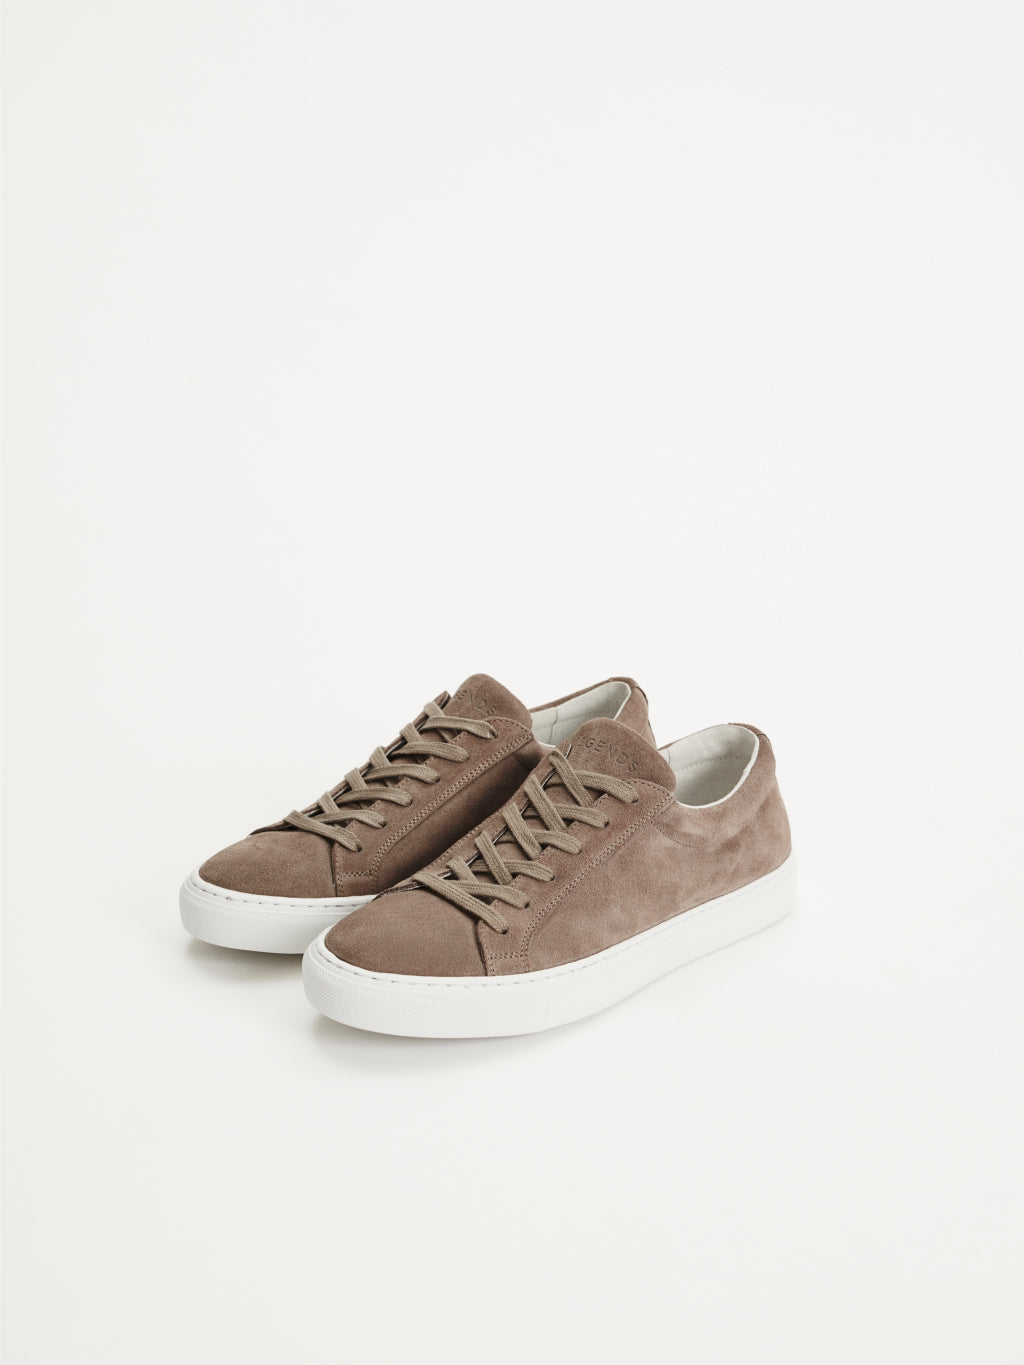 Resort Classic Sneakers | Grey